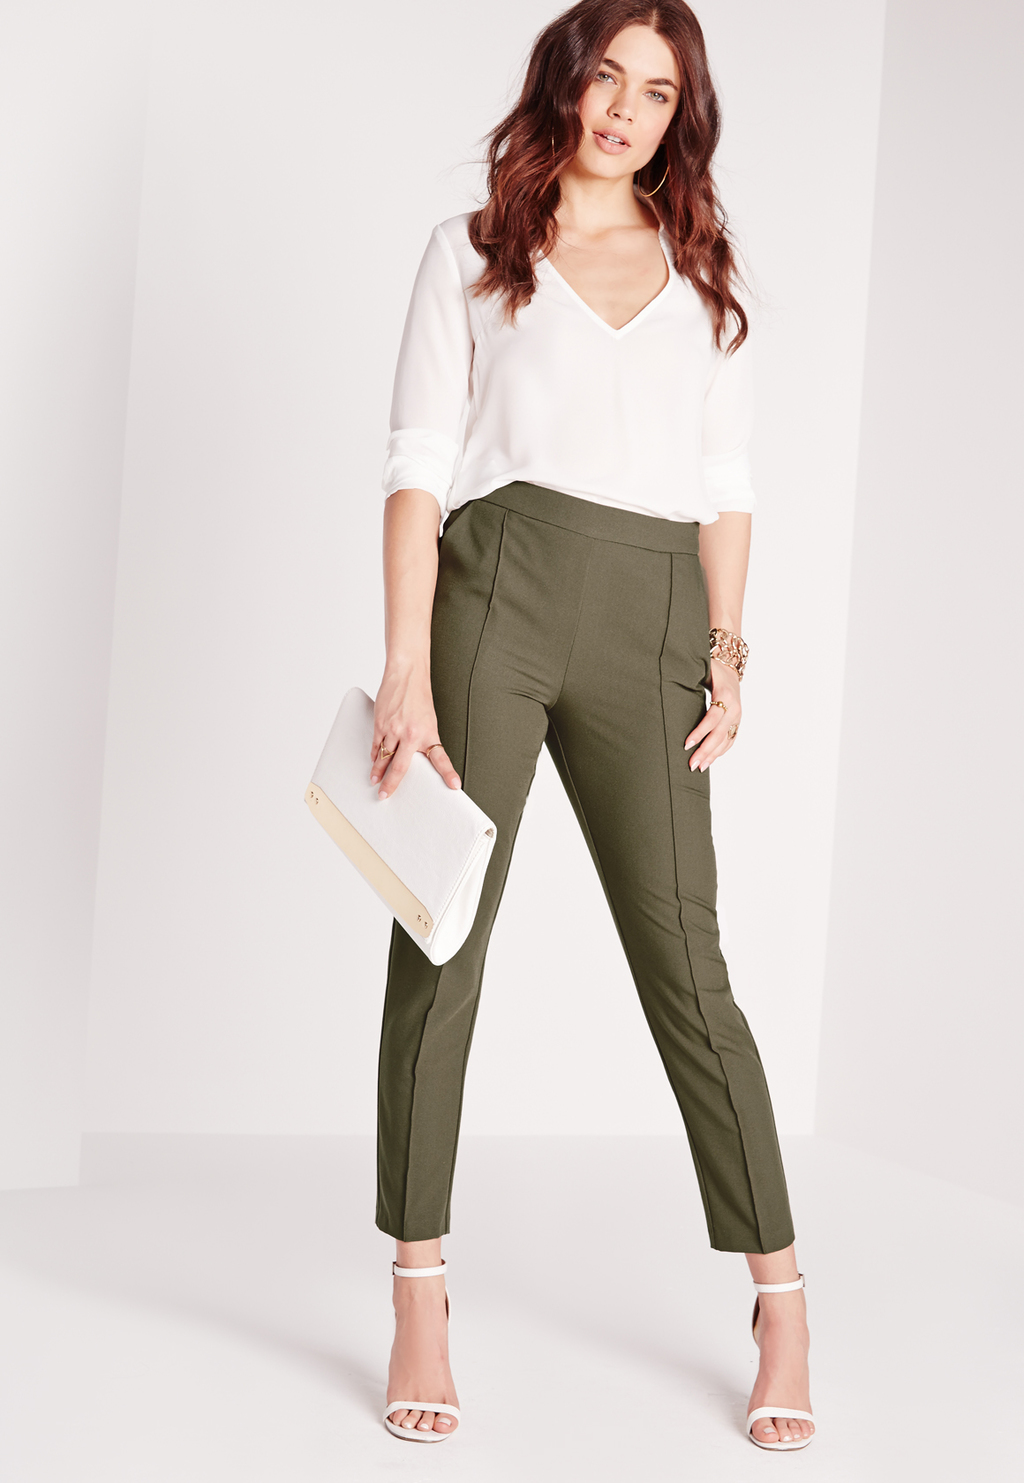 Pintuck Detail Cigarette Trousers Khaki, Beige - pattern: plain; waist: high rise; hip detail: draws attention to hips; predominant colour: khaki; length: ankle length; fibres: polyester/polyamide - 100%; fit: slim leg; pattern type: fabric; texture group: other - light to midweight; style: standard; occasions: creative work; season: s/s 2016; wardrobe: basic